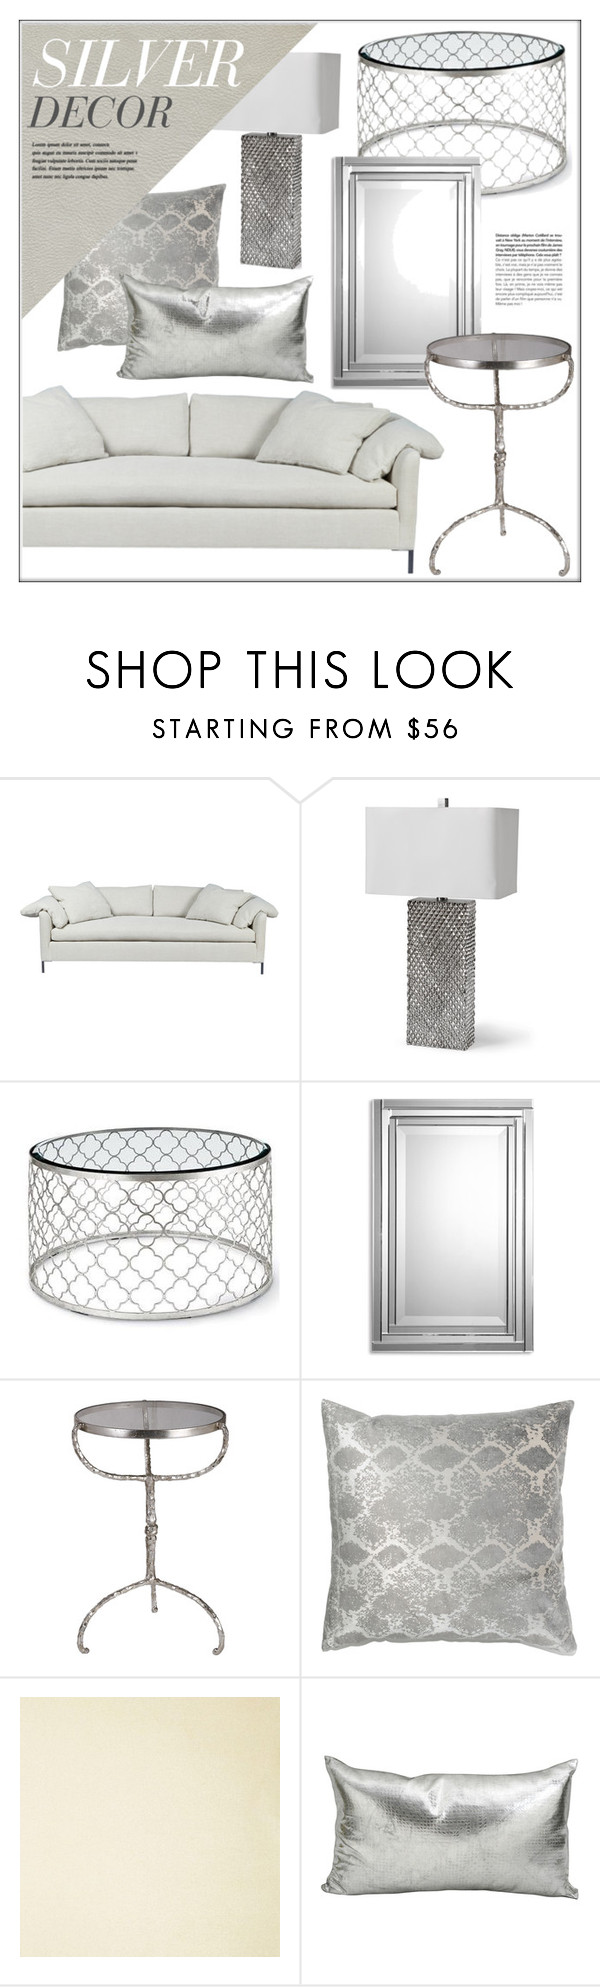 "silver home decor""kathykuohome ❤ liked on polyvore featuring"